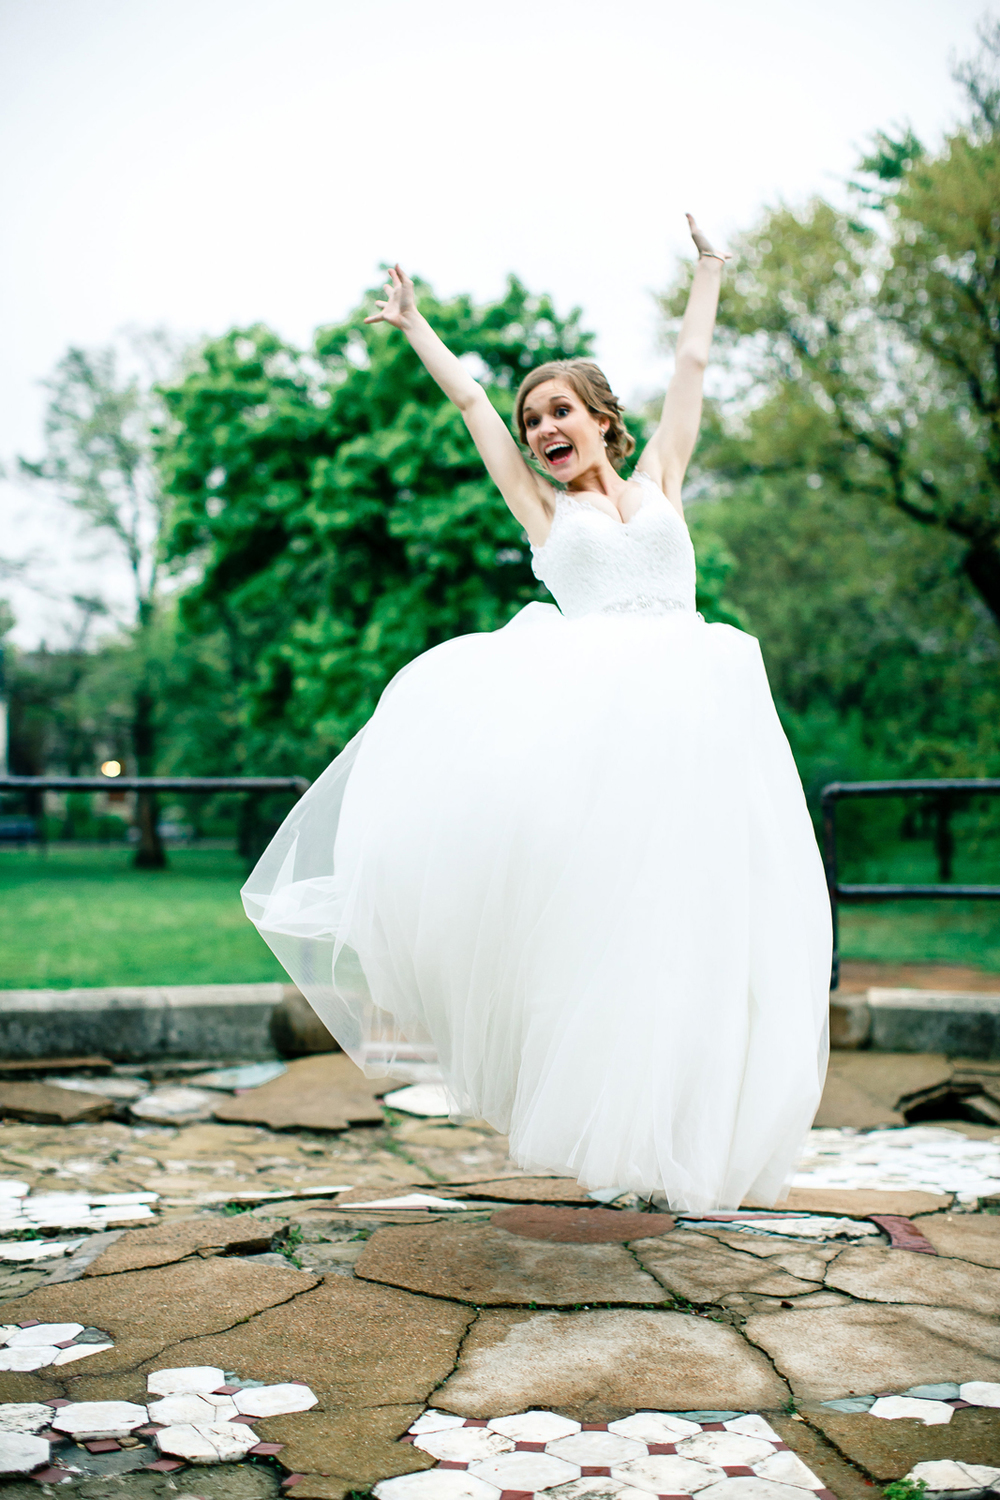 Bride Groom Jumping Lafayette Square Park St Louis Wedding Photographer Oldani Photography 1.jpg